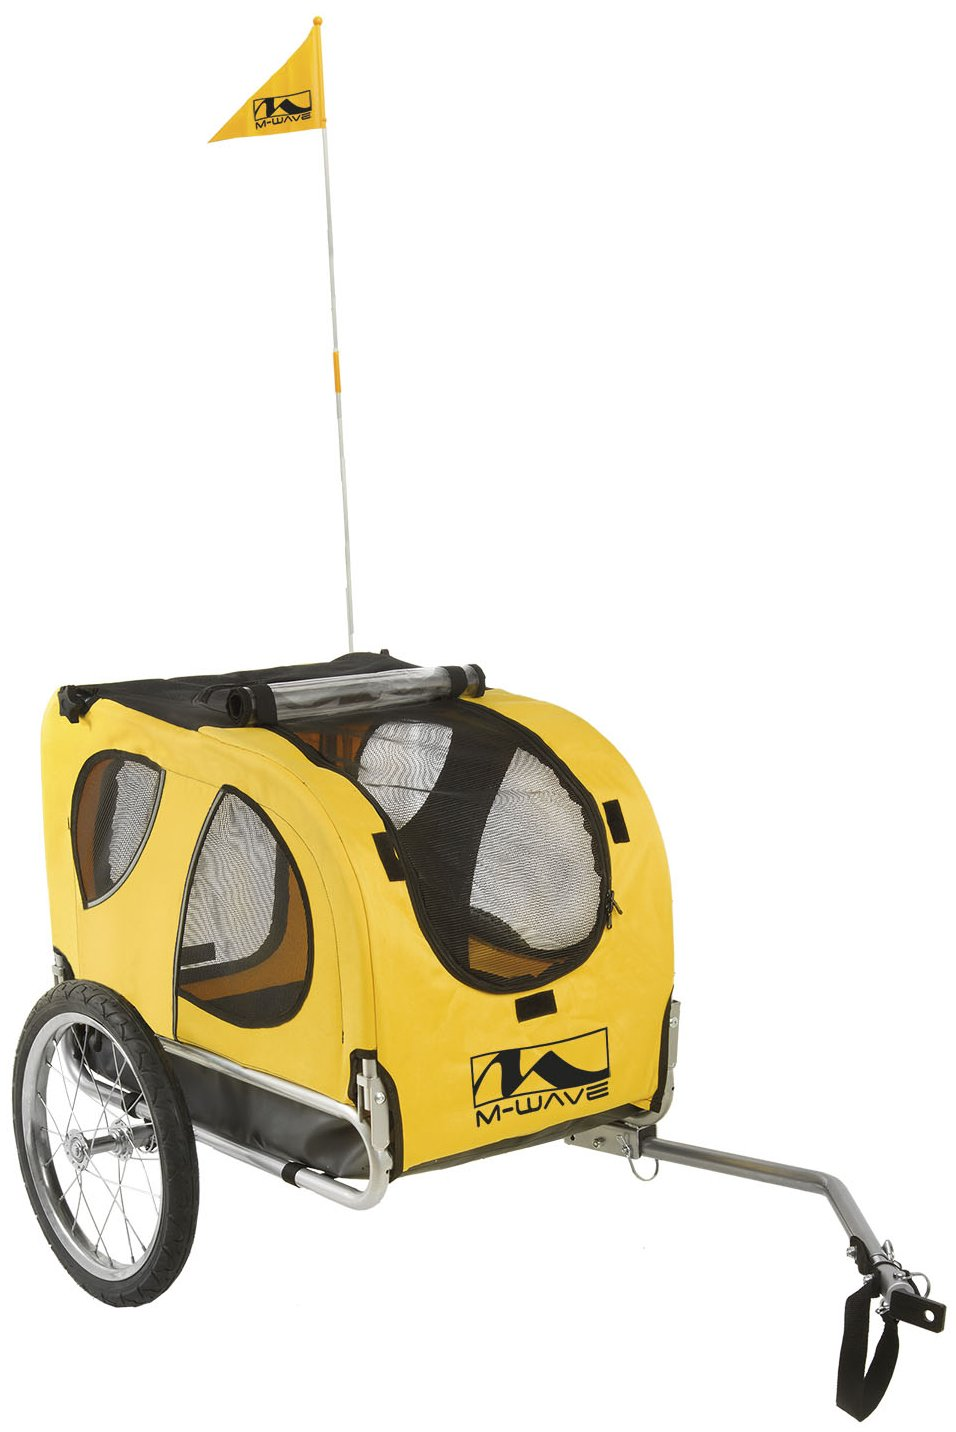 M Wave Pet N' Go Foldable Bicycle Trailer